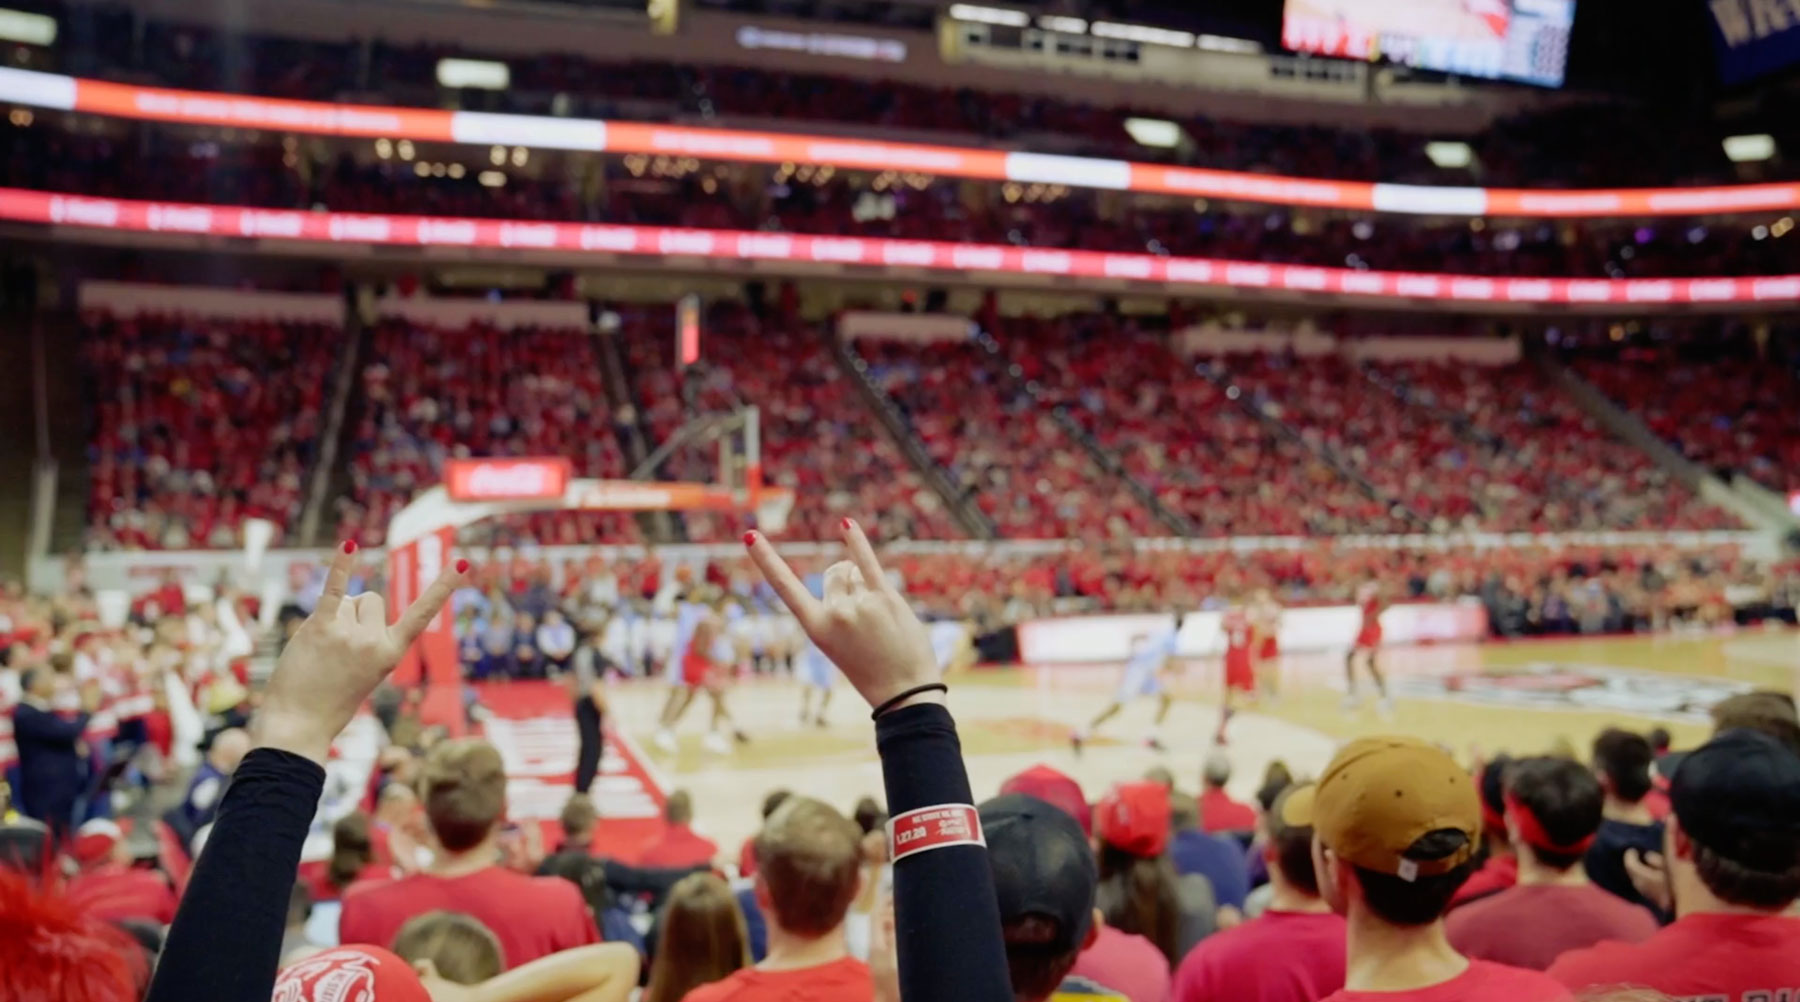 Fan at N.C. State basketball game with Wolfpack hand gesture